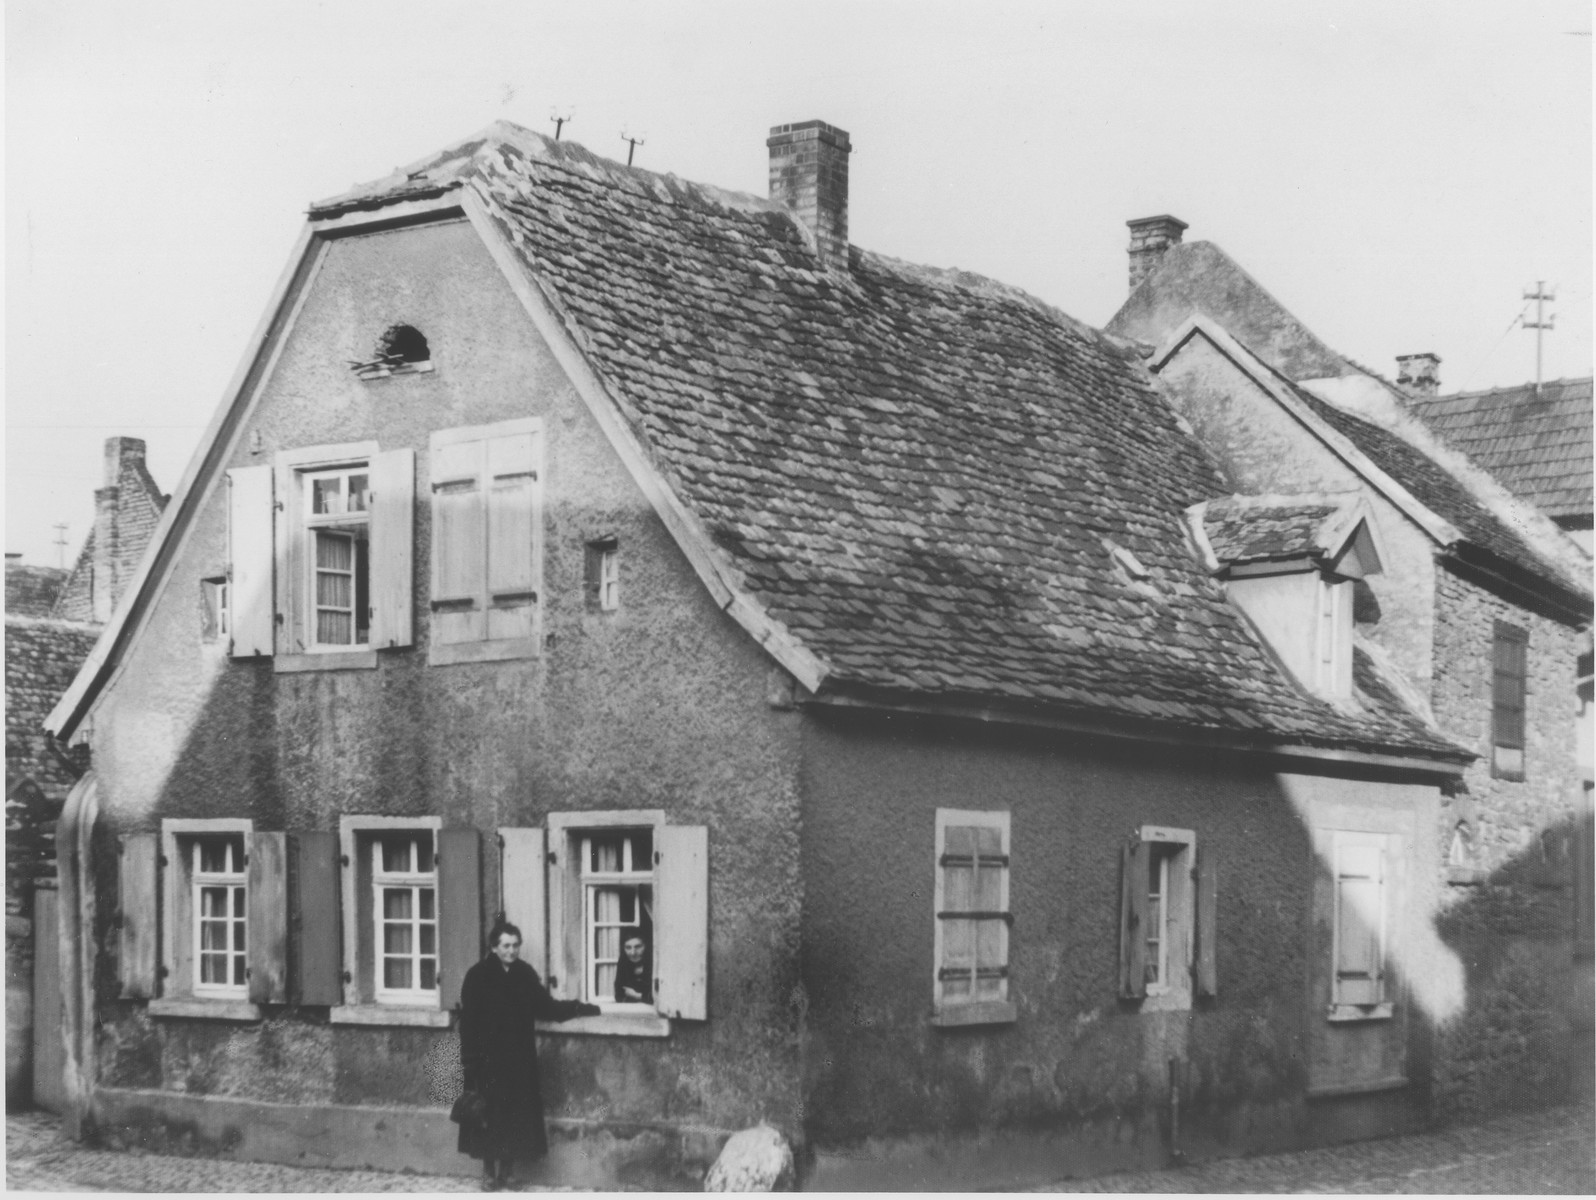 View of the Hellman family home in Guntersblum, Germany.